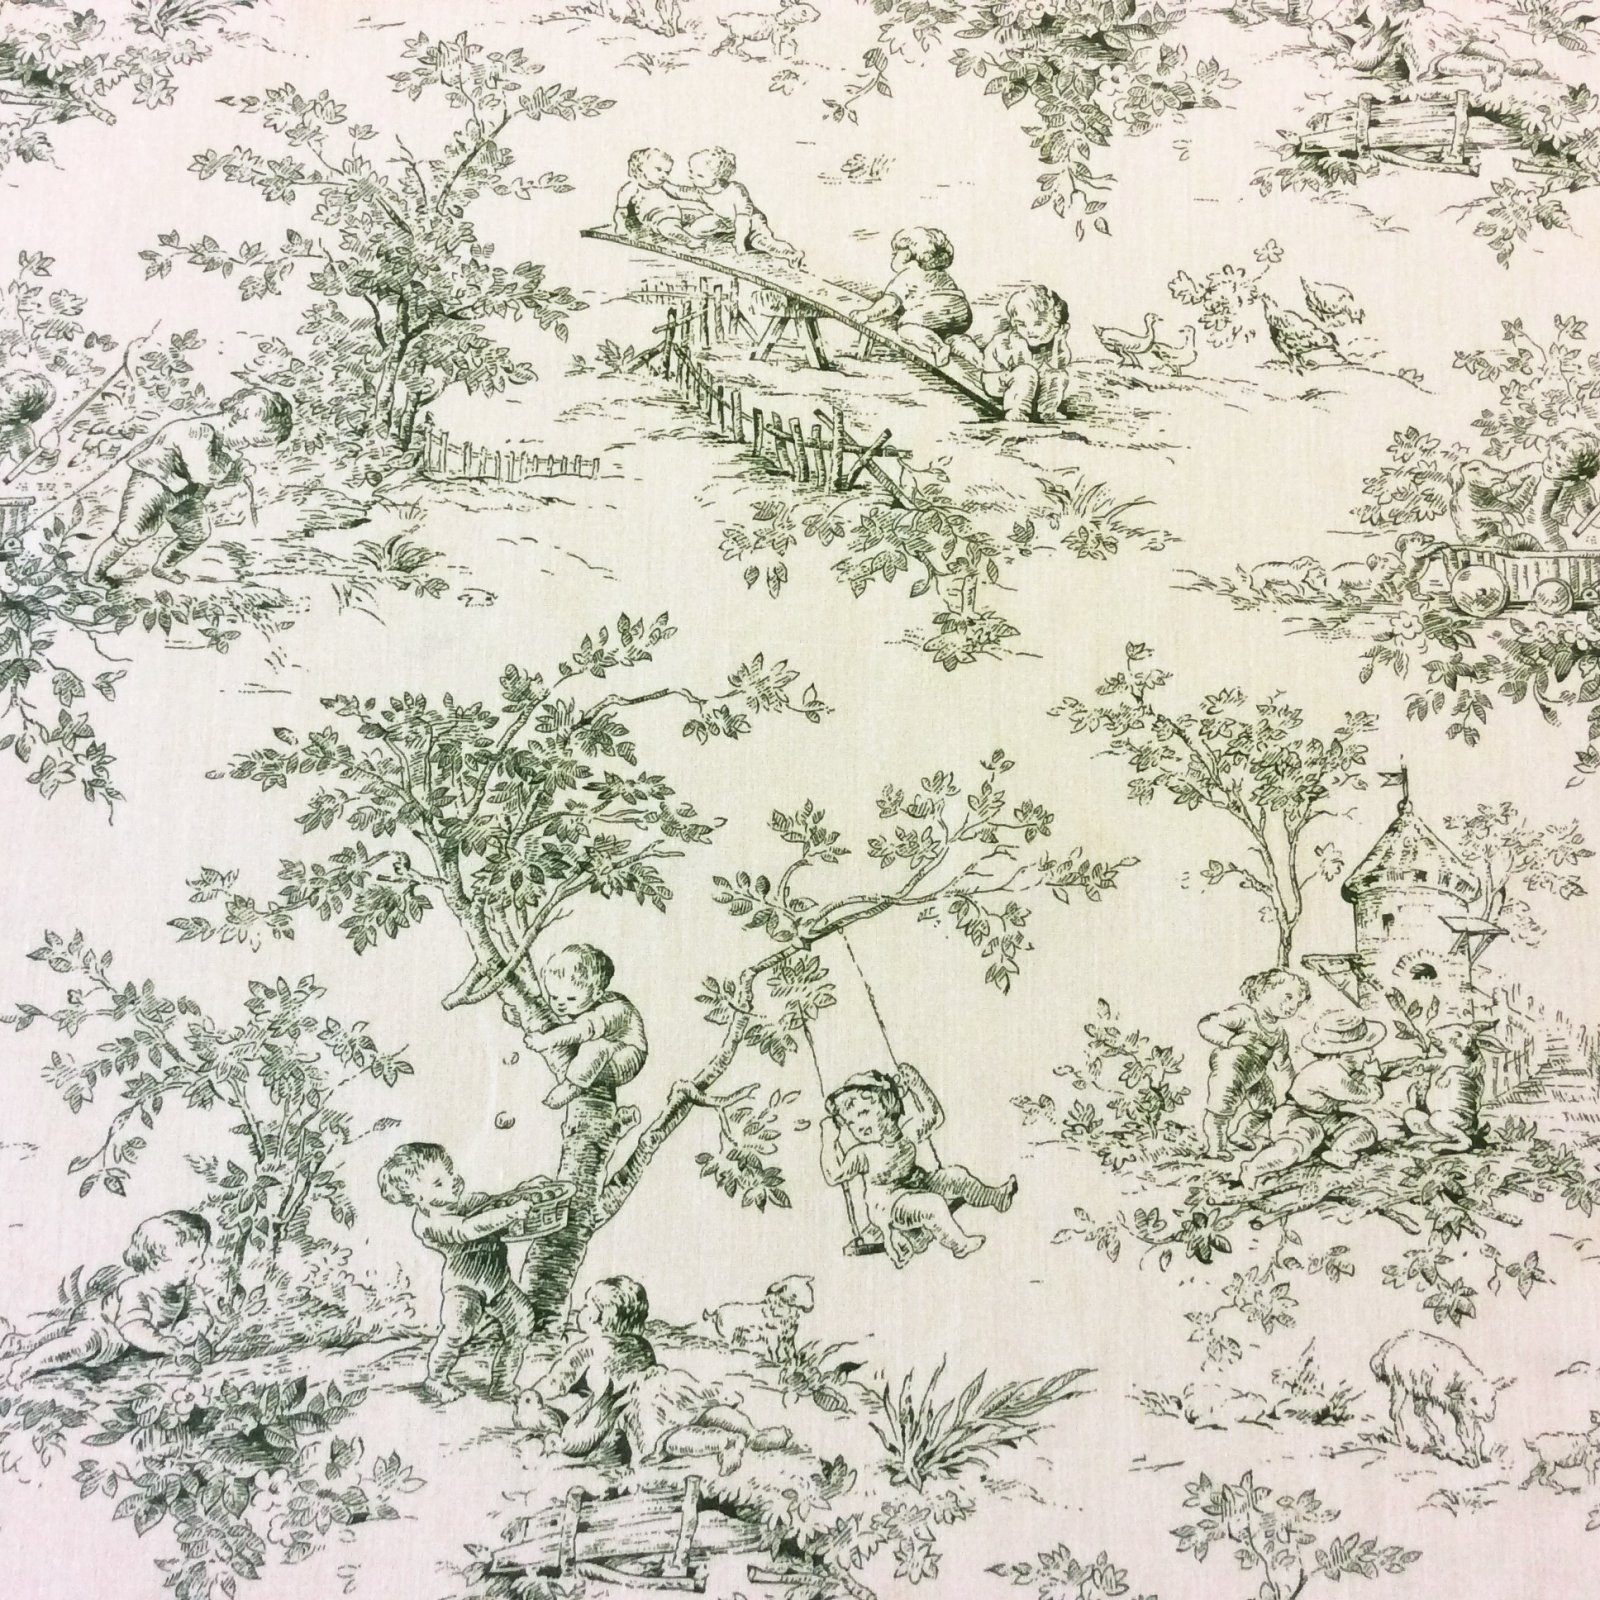 301FG Green Children Toile French England Classic Cotton Home Decor Fabric